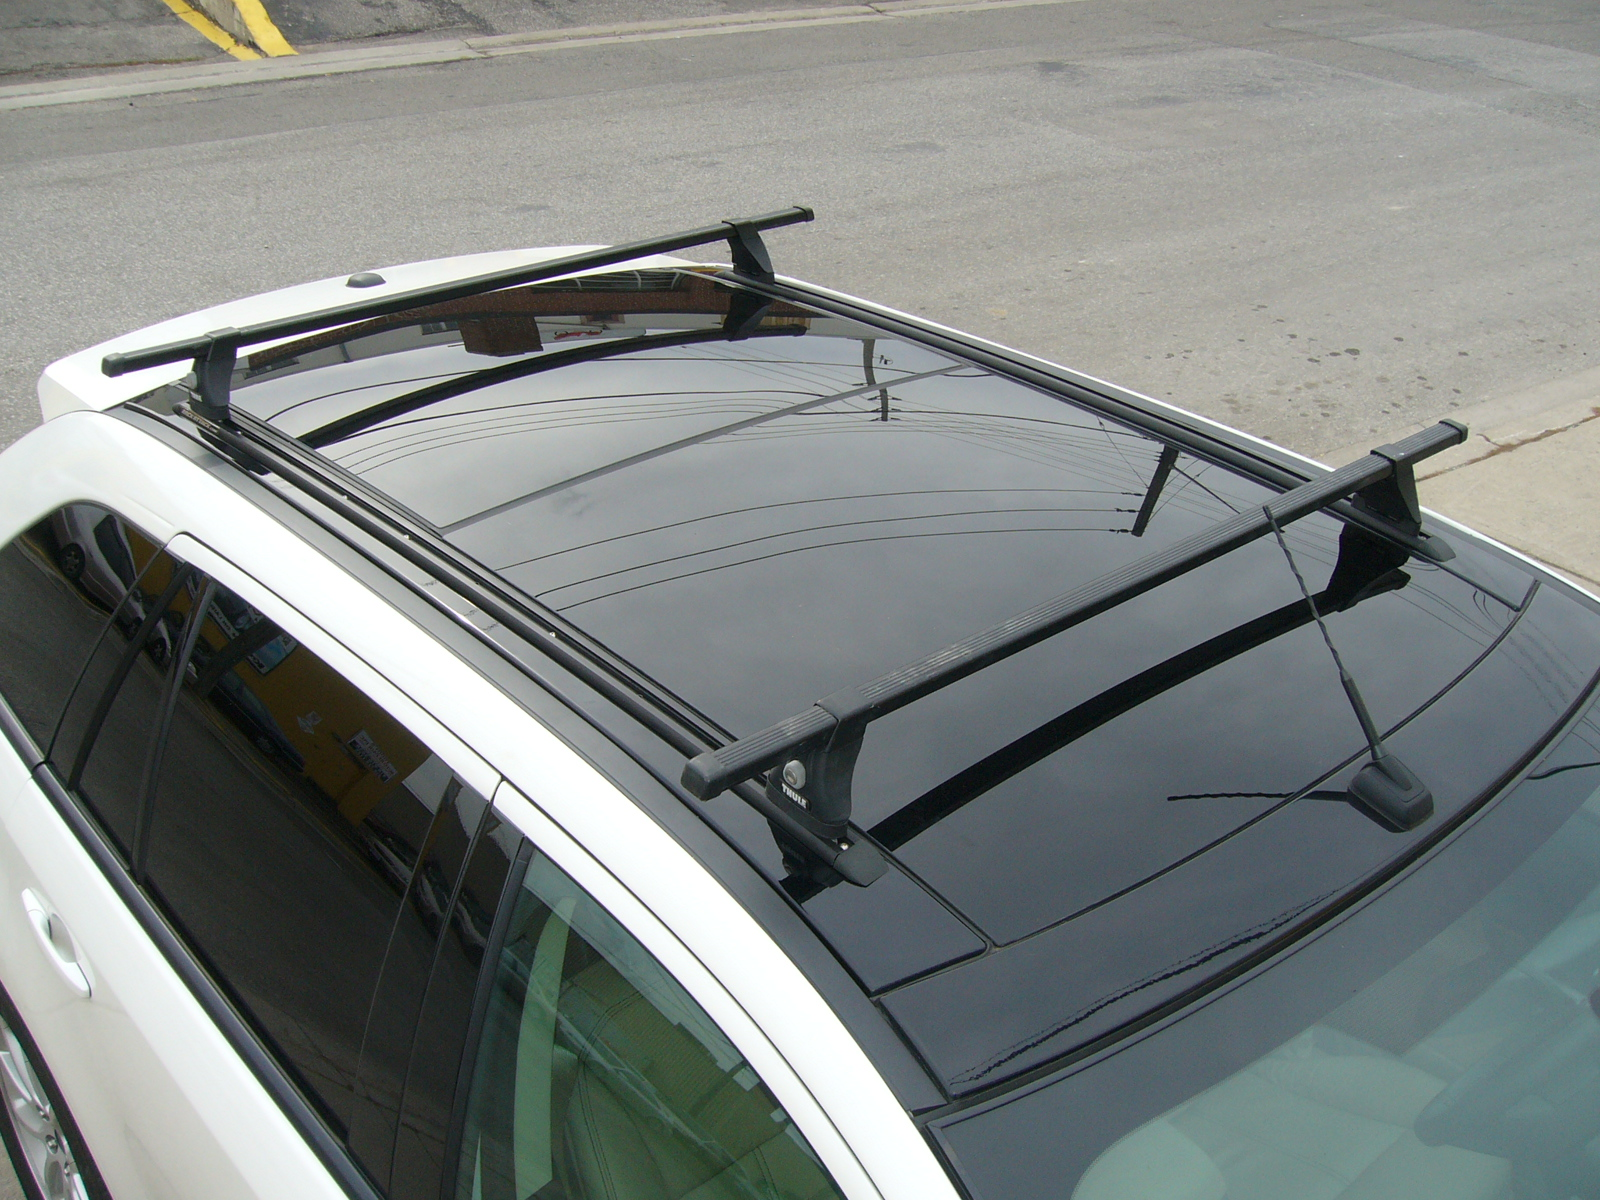 Ford Edge Roof Rack With Sunroof